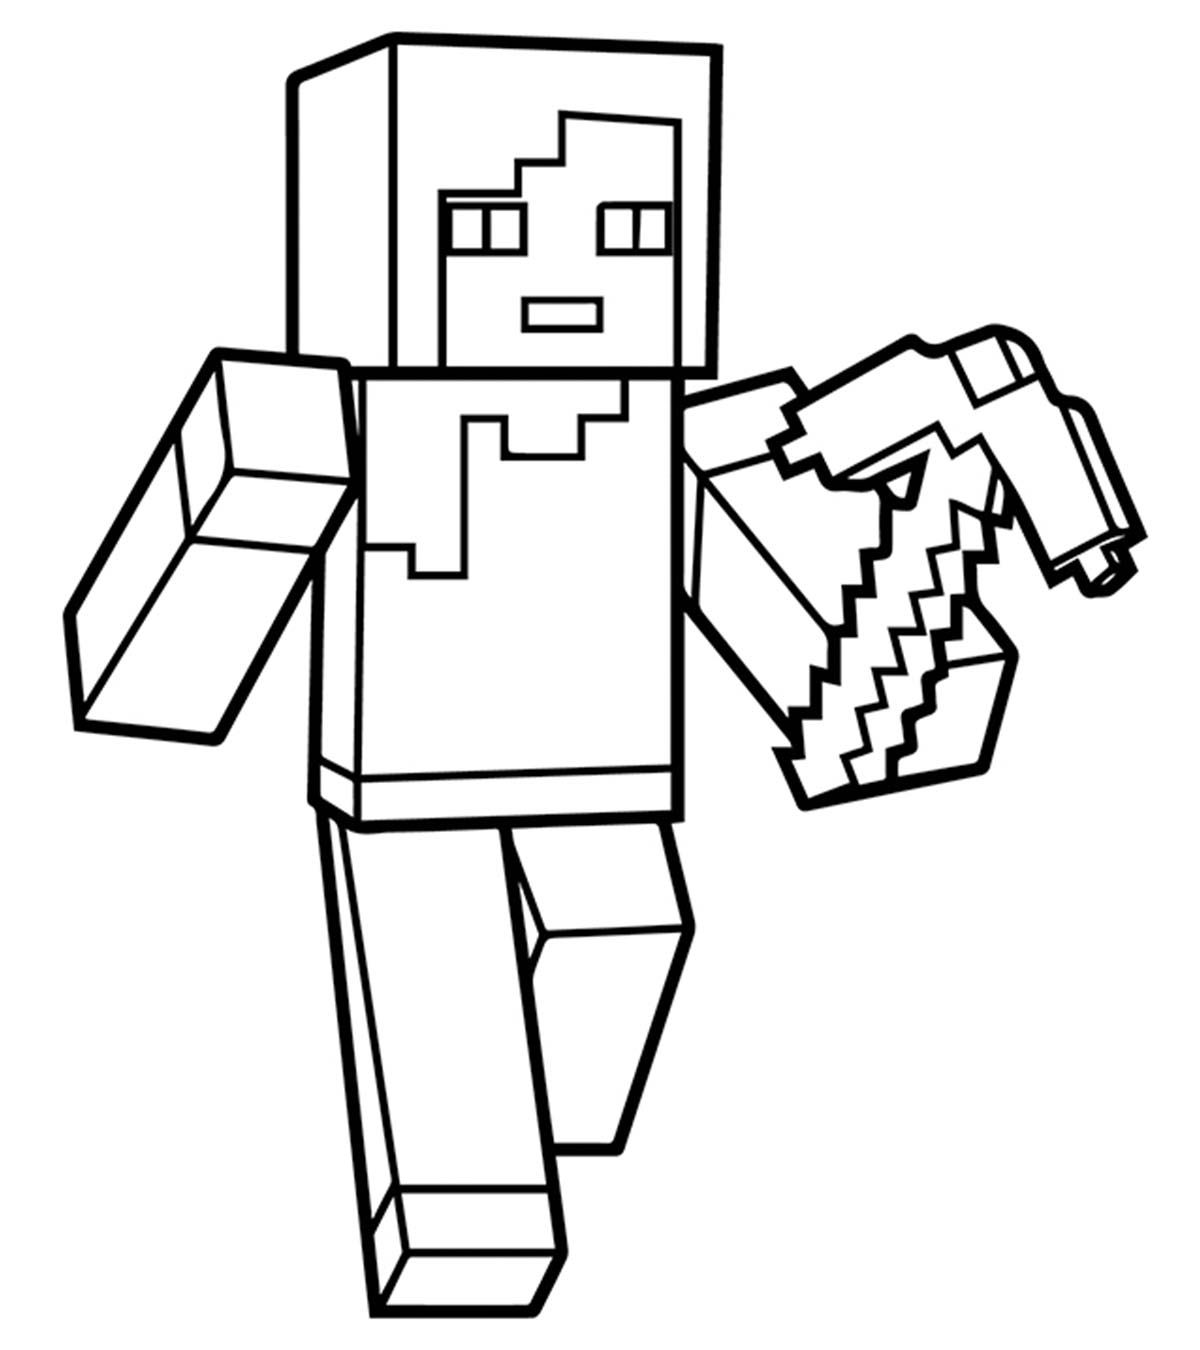 minecraft pictures to print of herobrine 92 minecraft coloring book online hd minecraft coloring minecraft of to print herobrine pictures